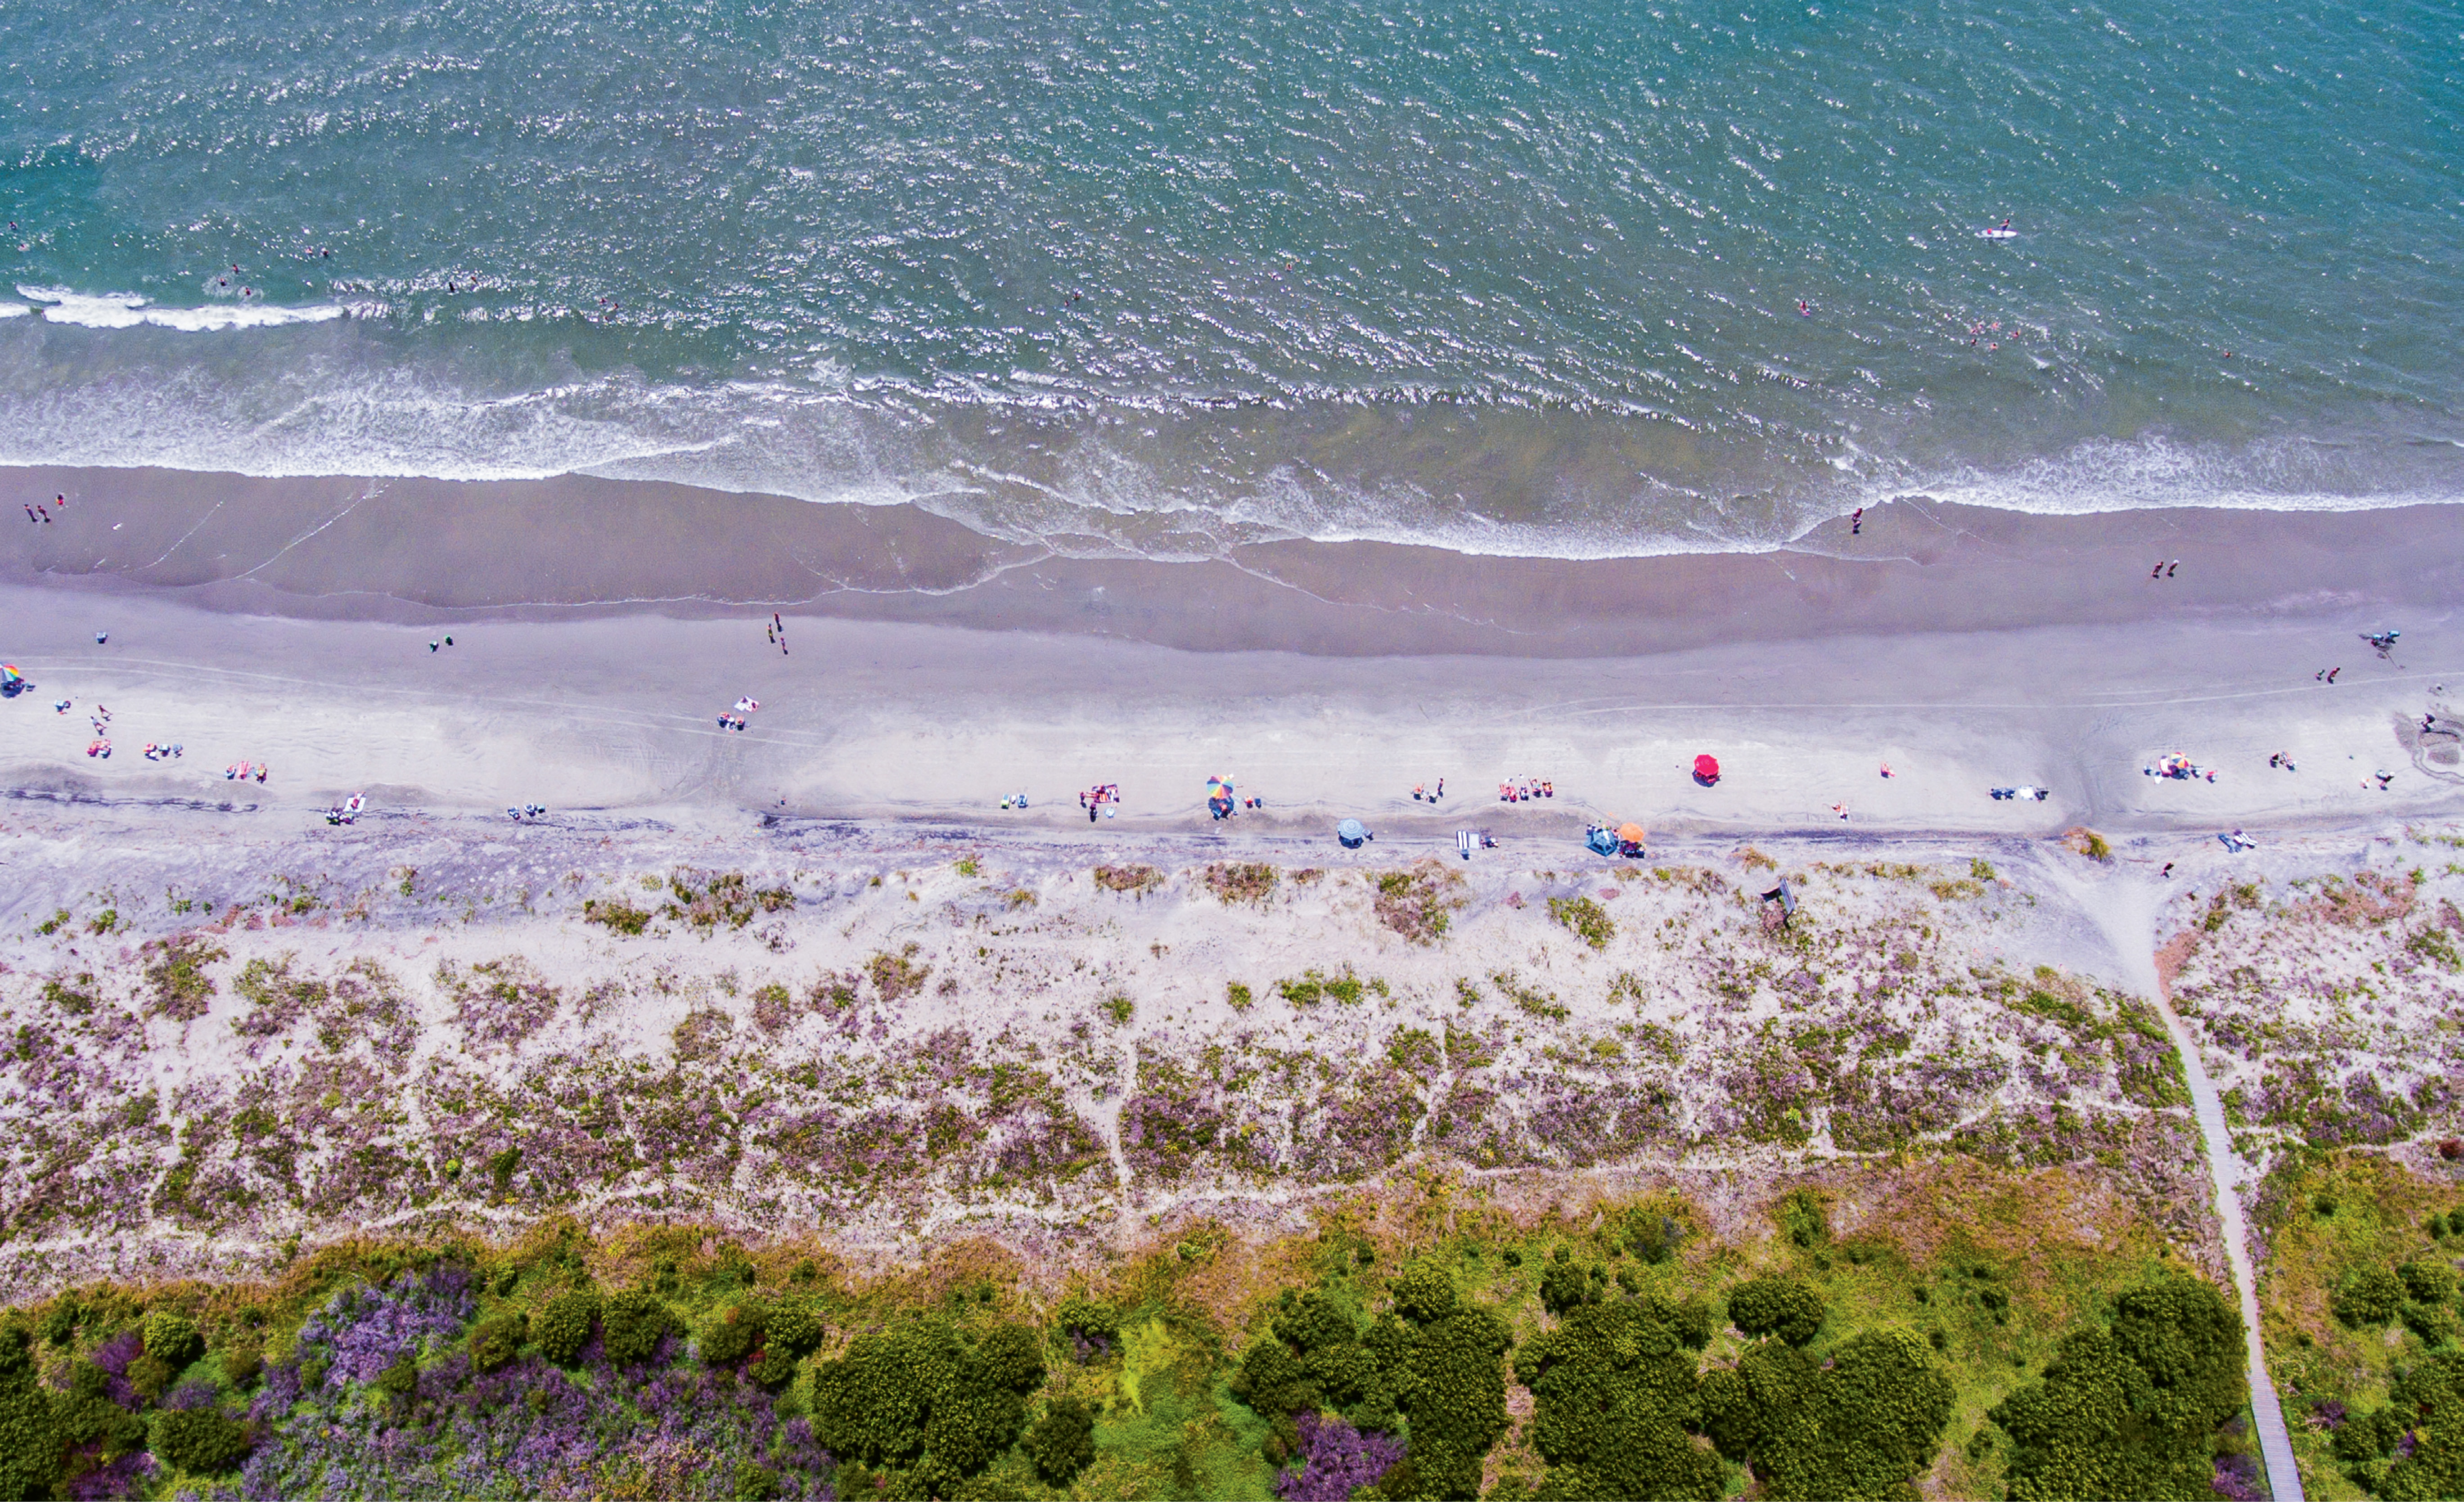 """""""Beach Day on Sully's"""" {Altitude: 350 feet}  Midday in early June near Station 25 on Sullivan's Island"""